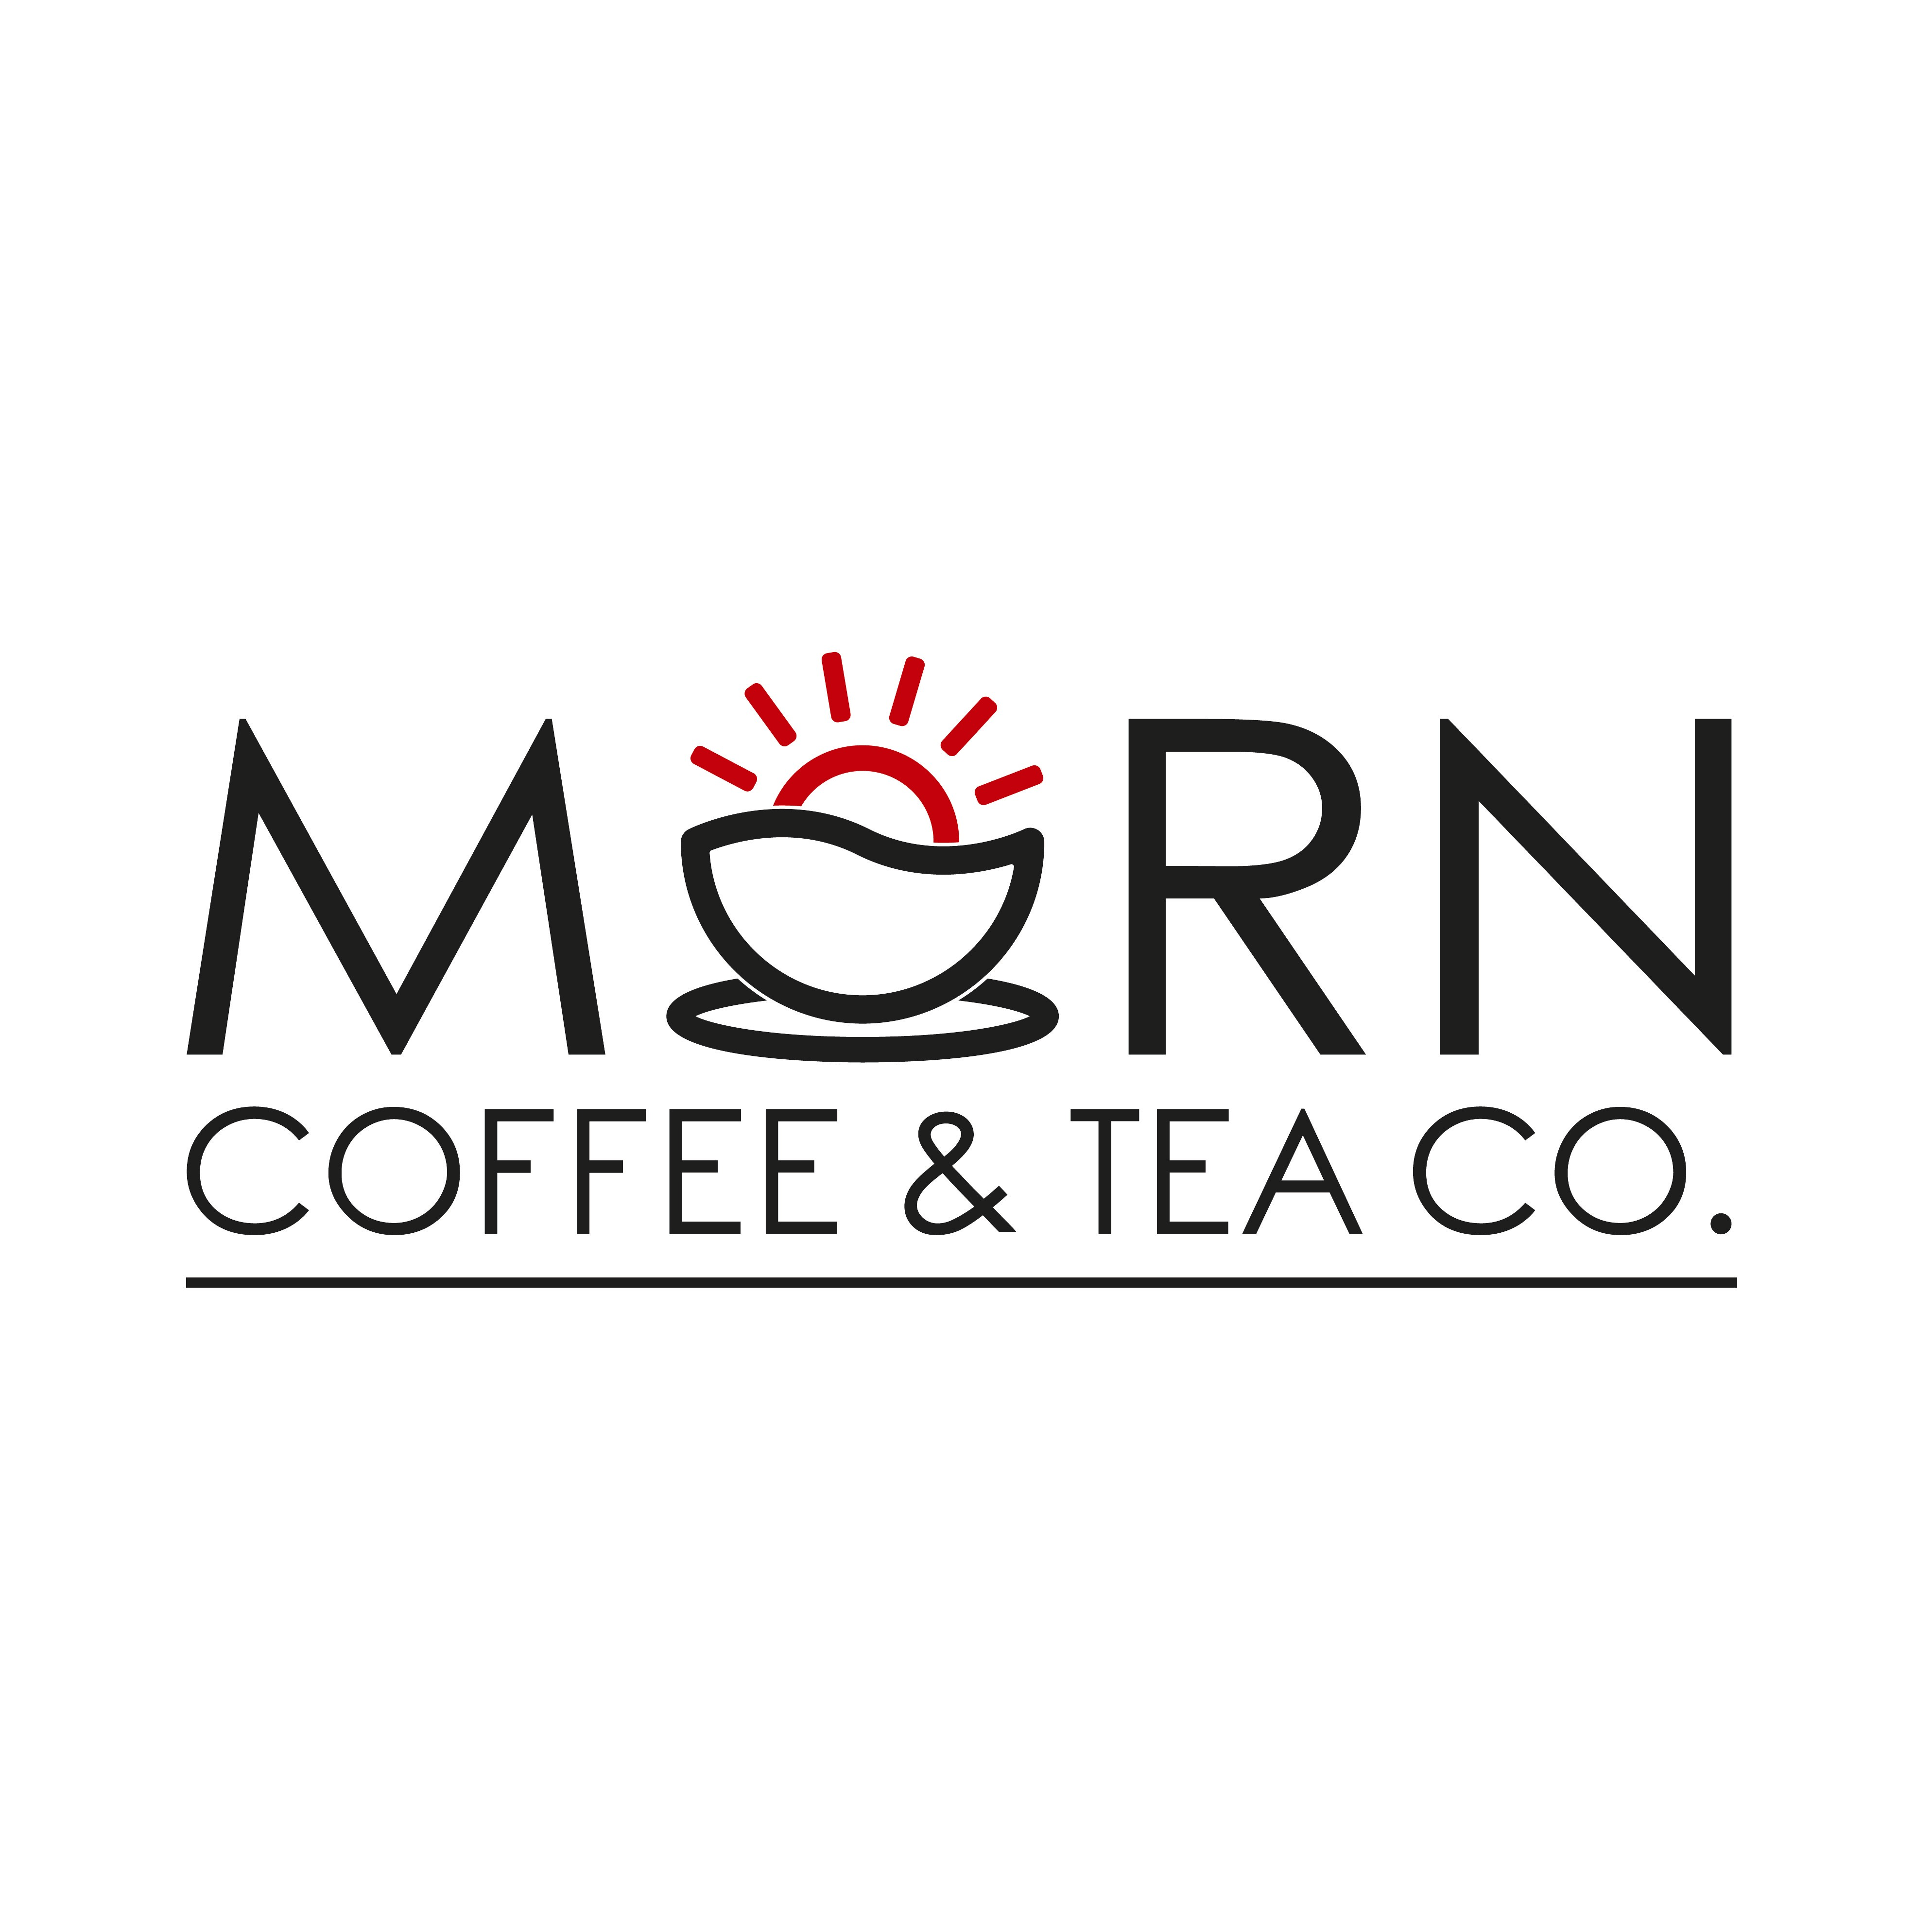 Morn Coffee & Tea Co.